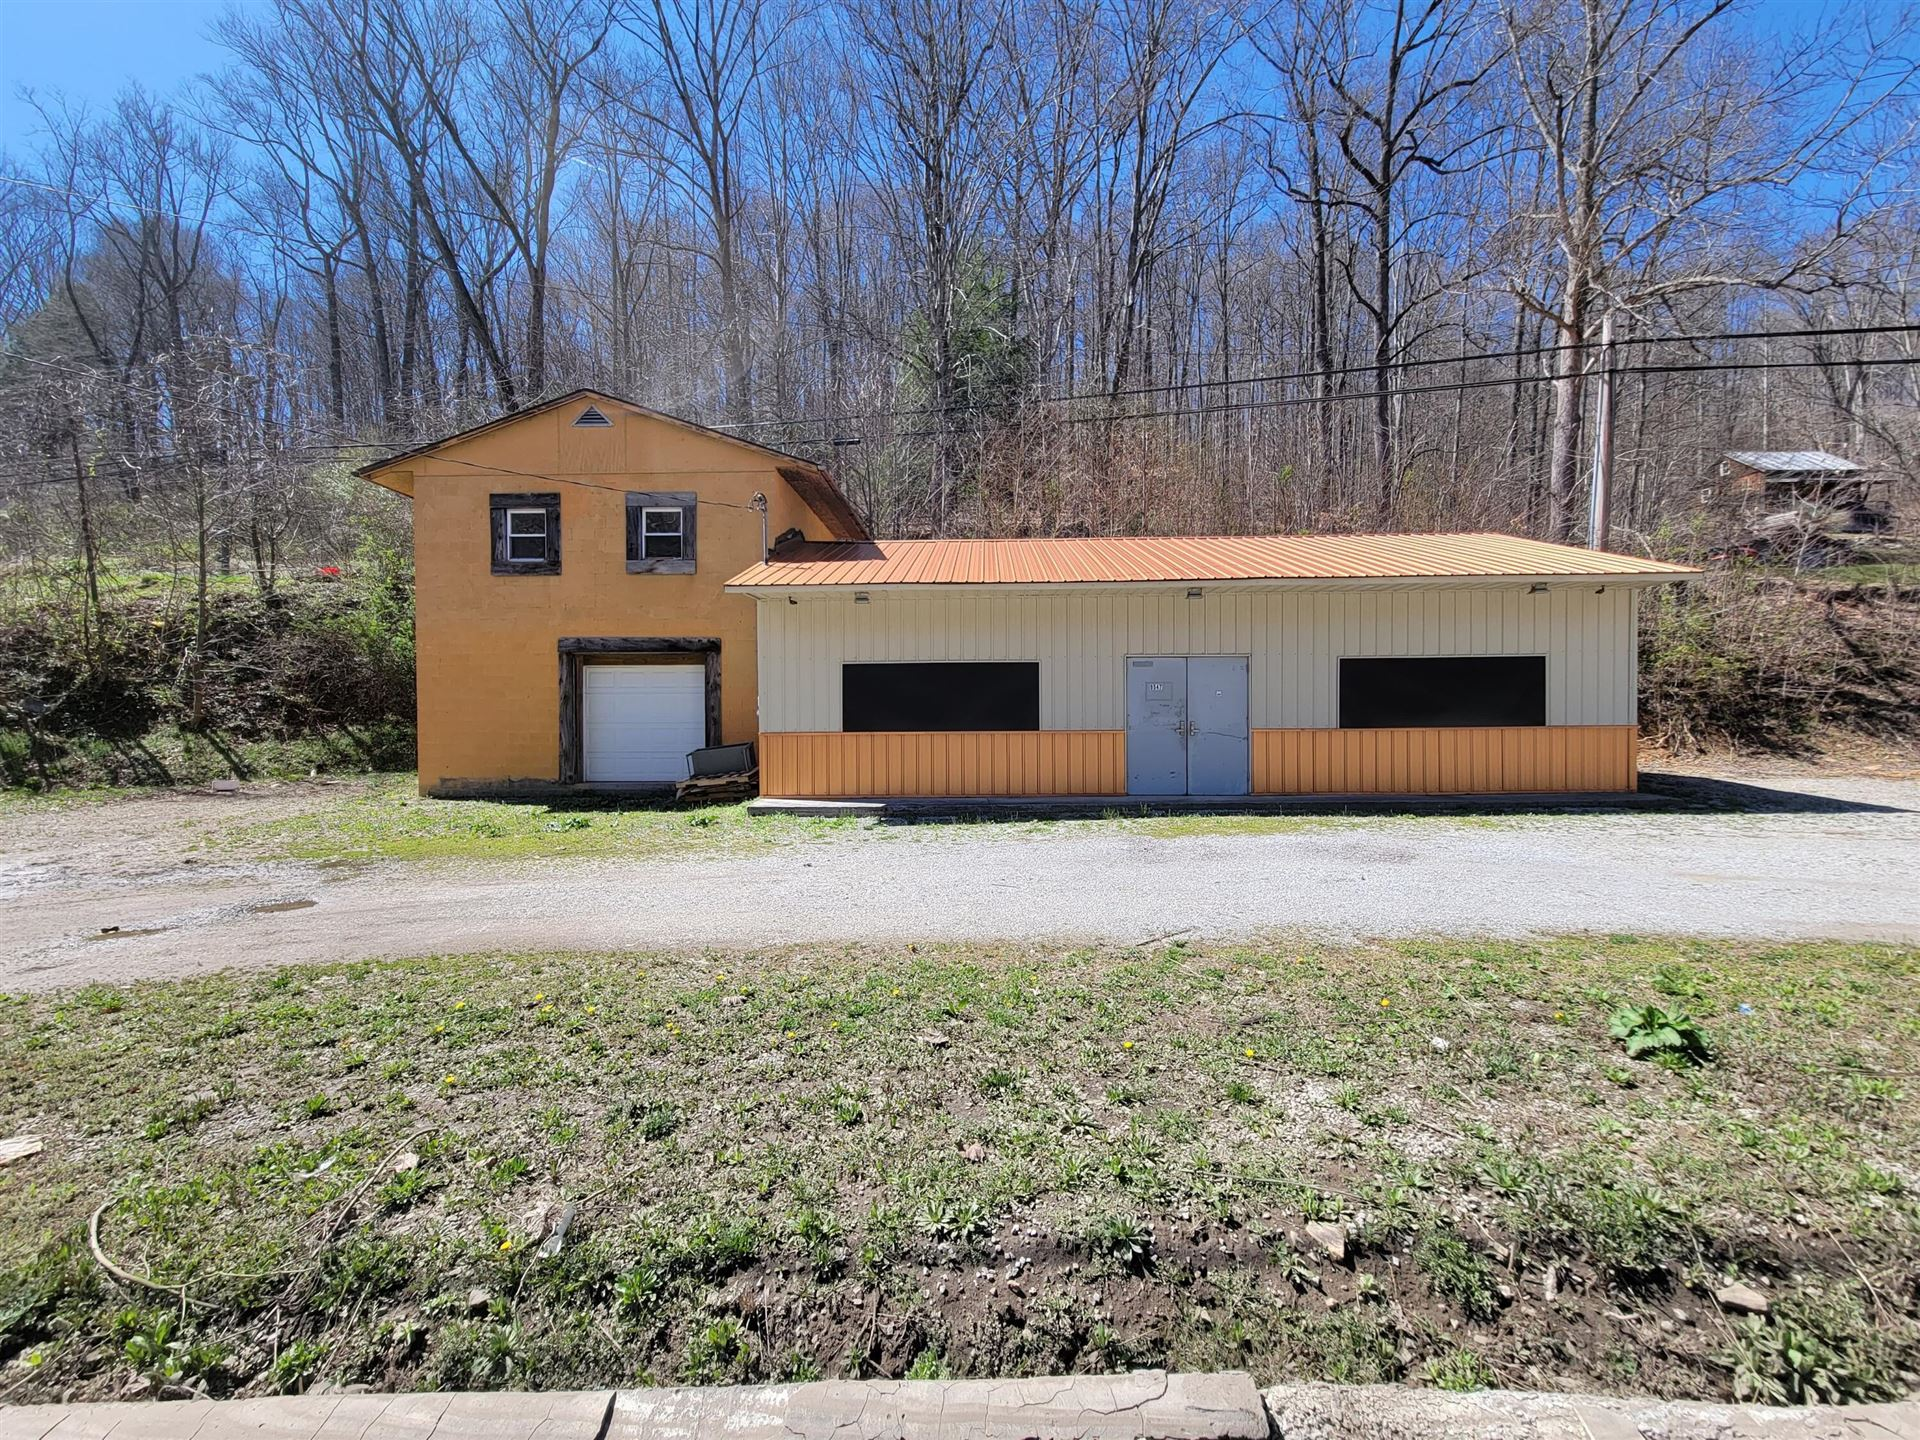 Photo of 9547 Orby Cantrell Highway, Pound, VA 24279 (MLS # 9920253)